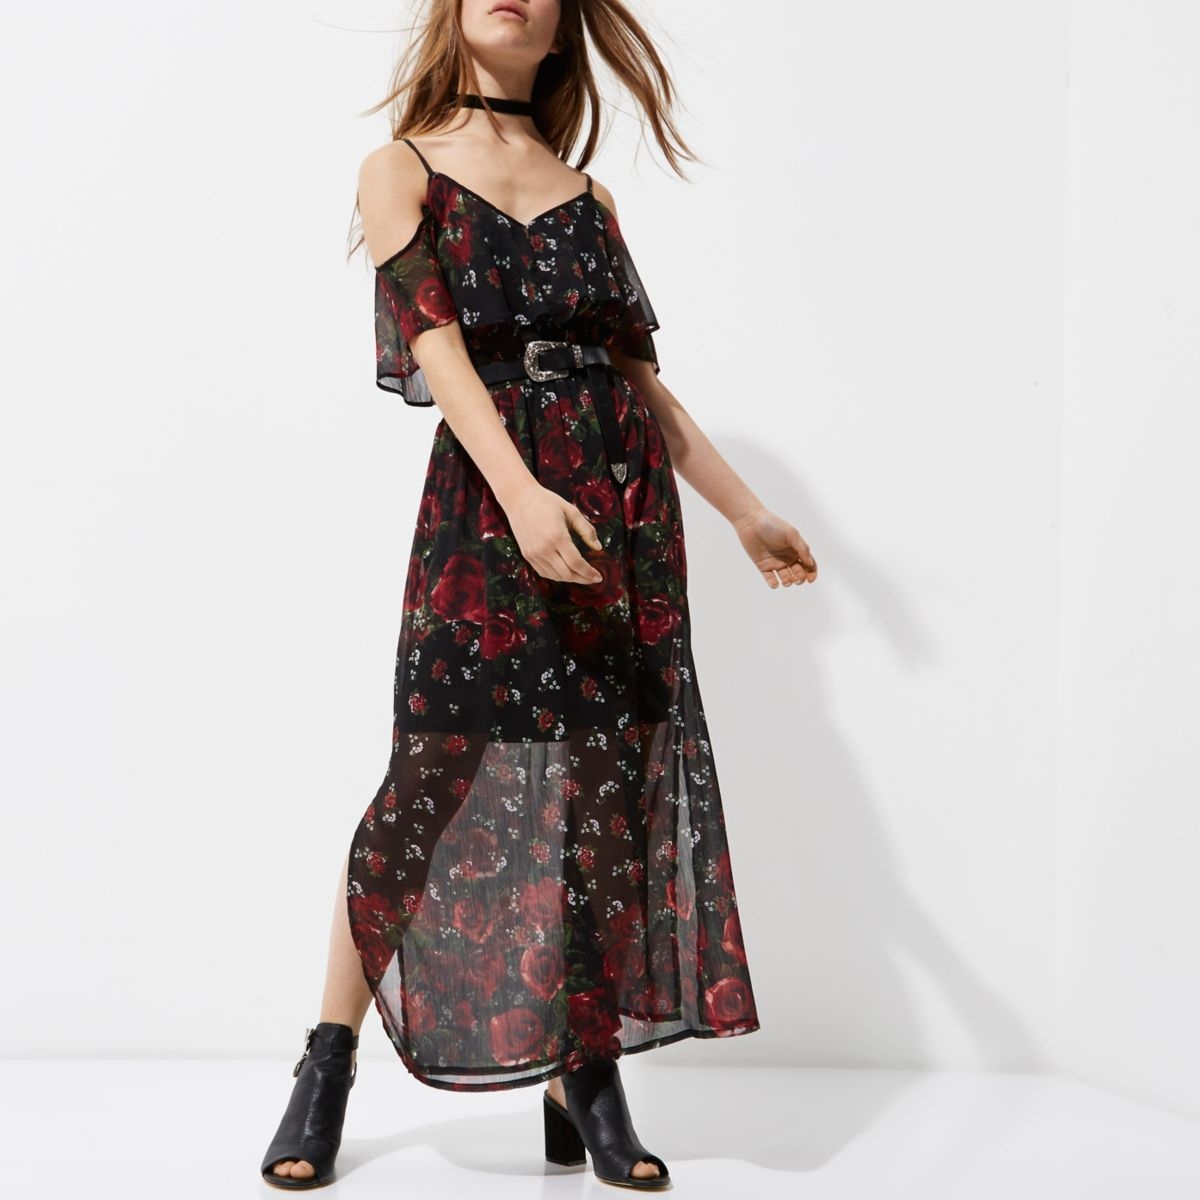 Petite black cold shoulder floral maxi dress